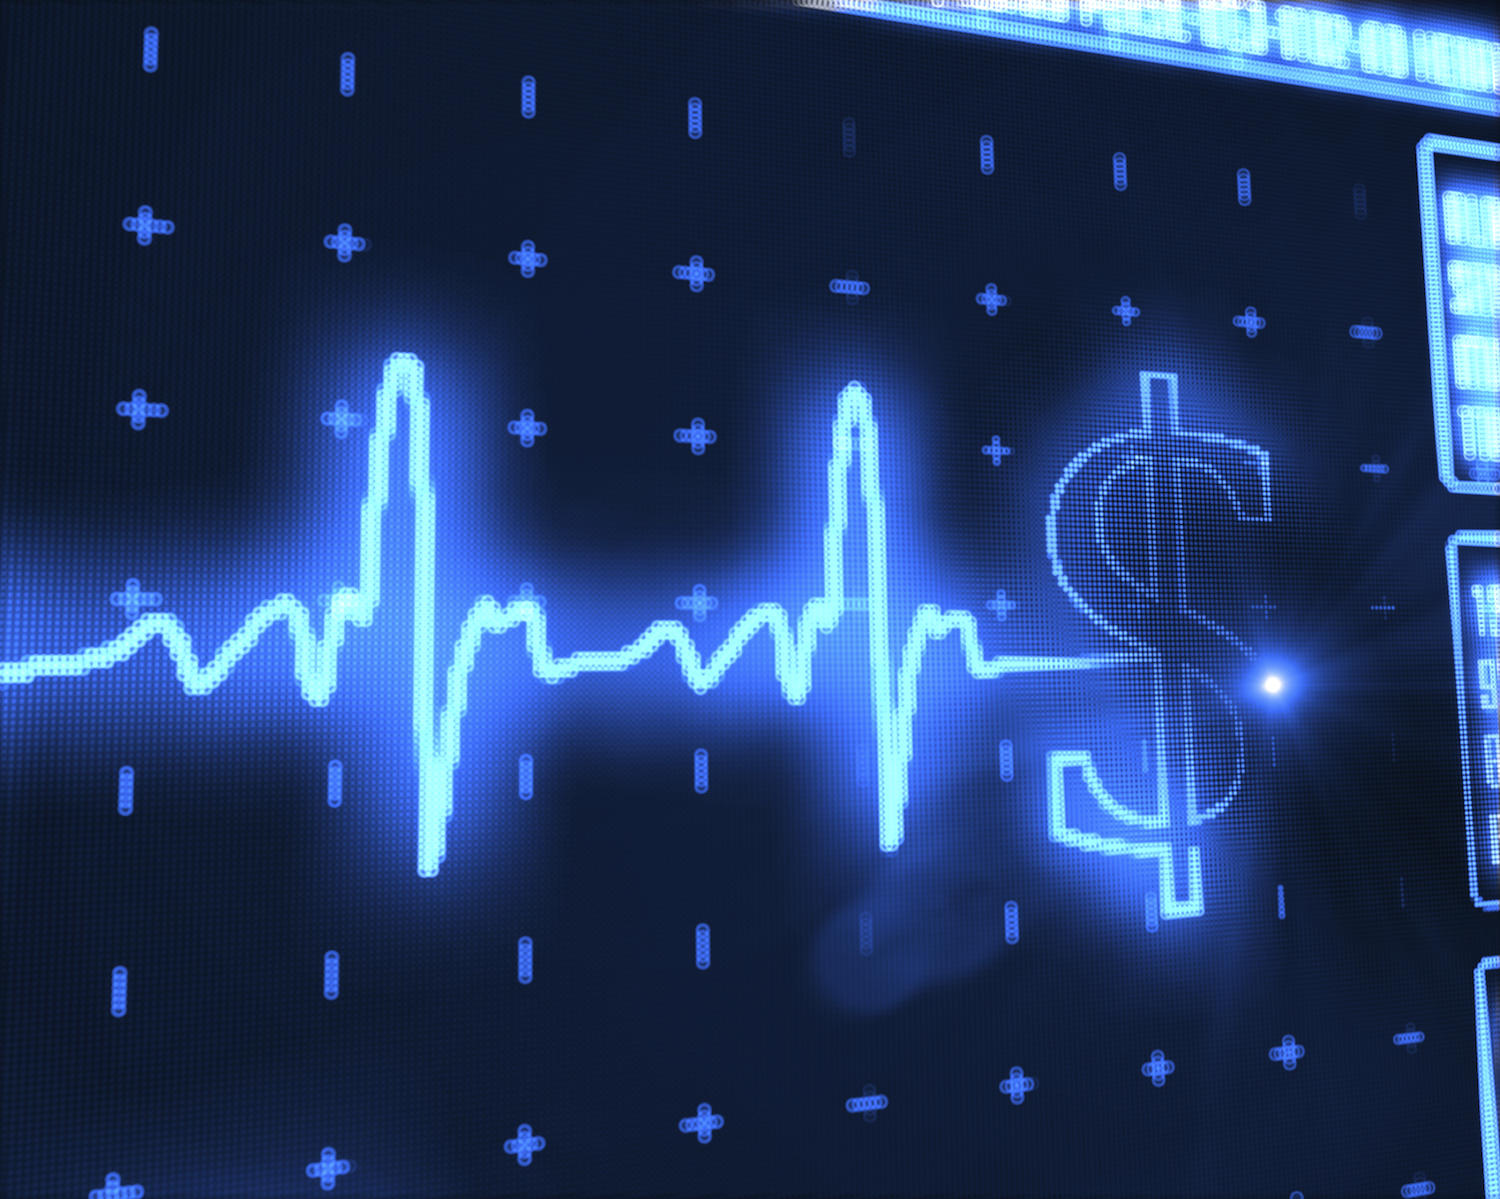 A blue hospital monitoring line that turns into a dollar symbol